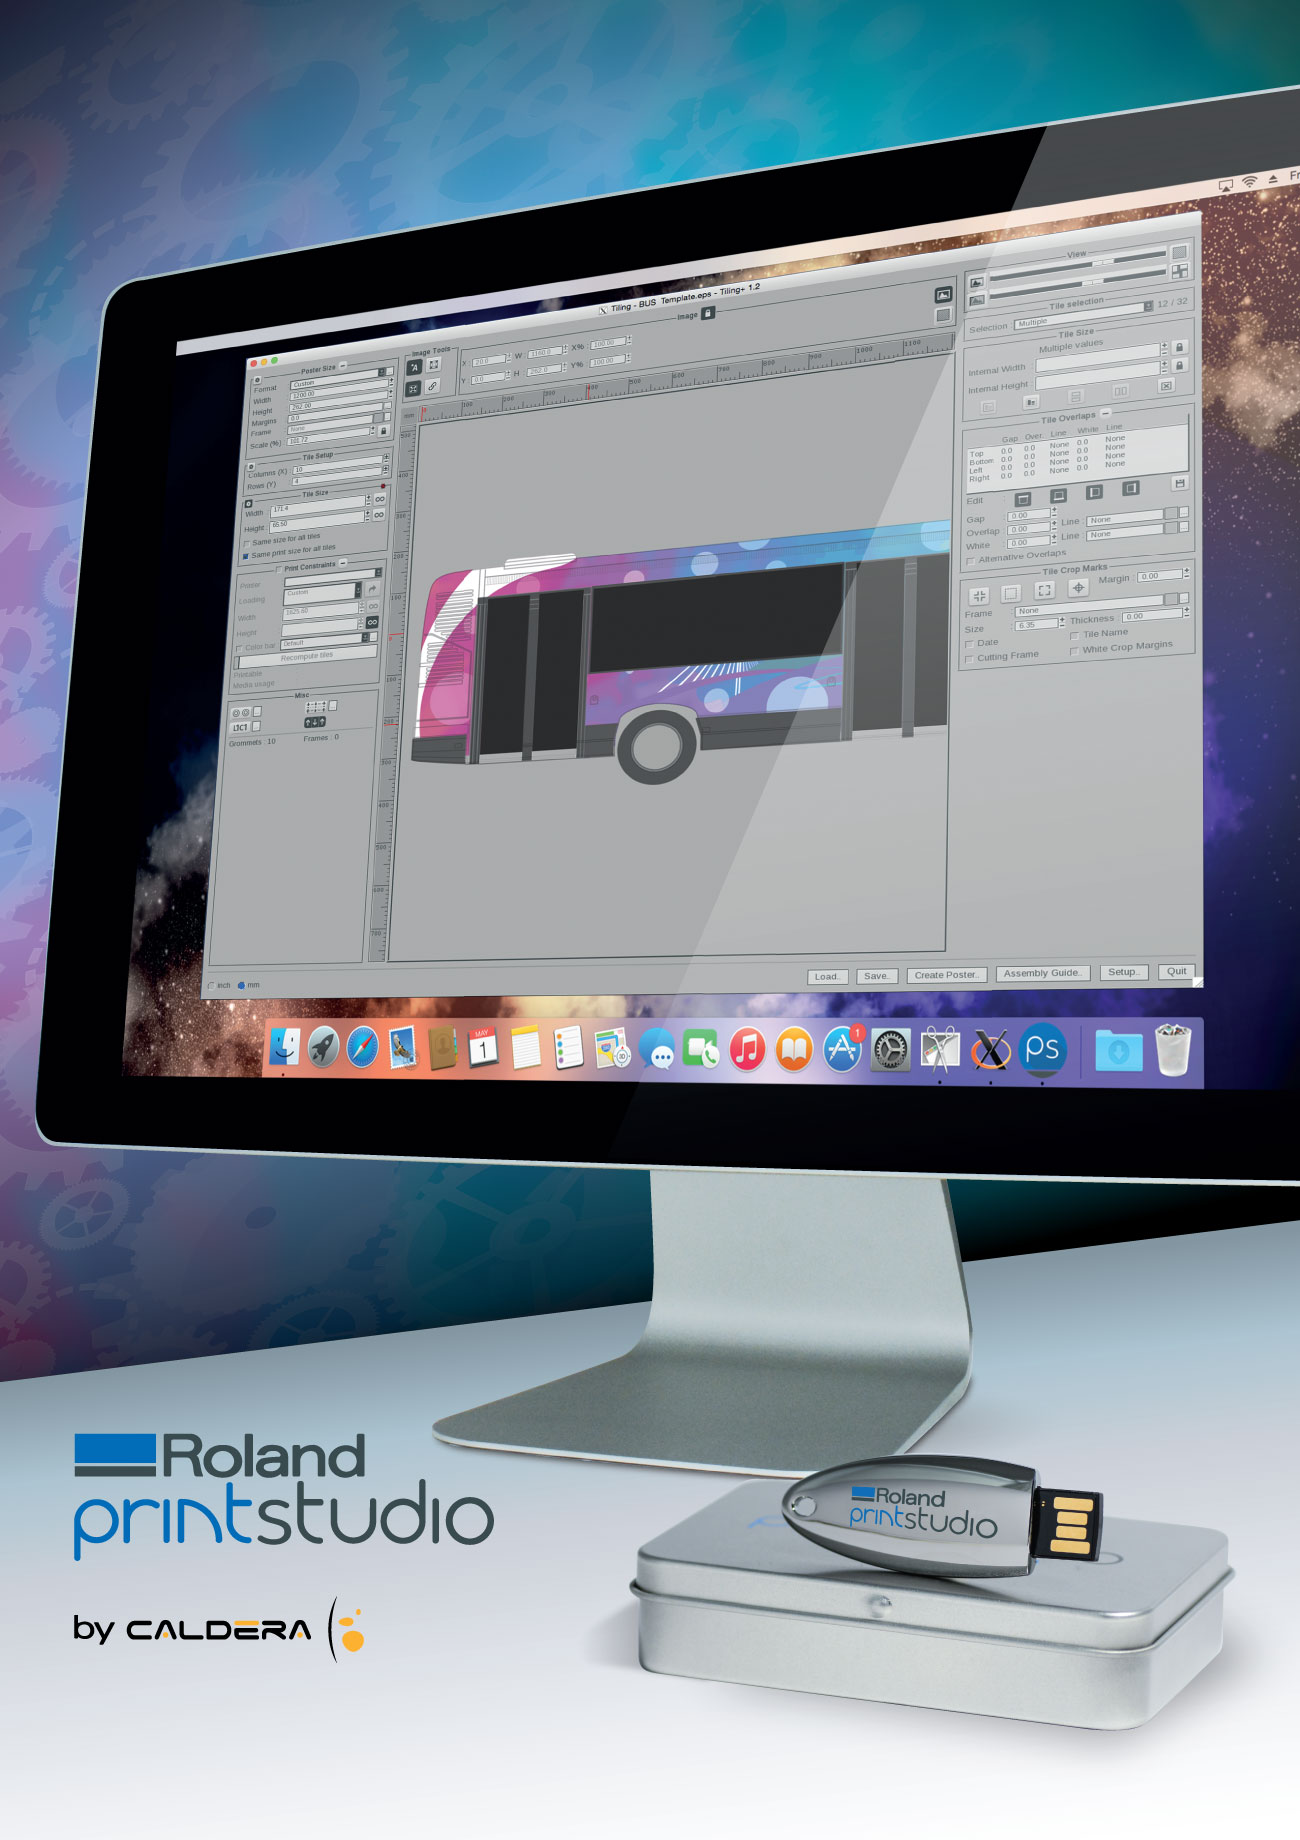 New Roland PrintStudio by Caldera RIP Software Release for Mac OS Users